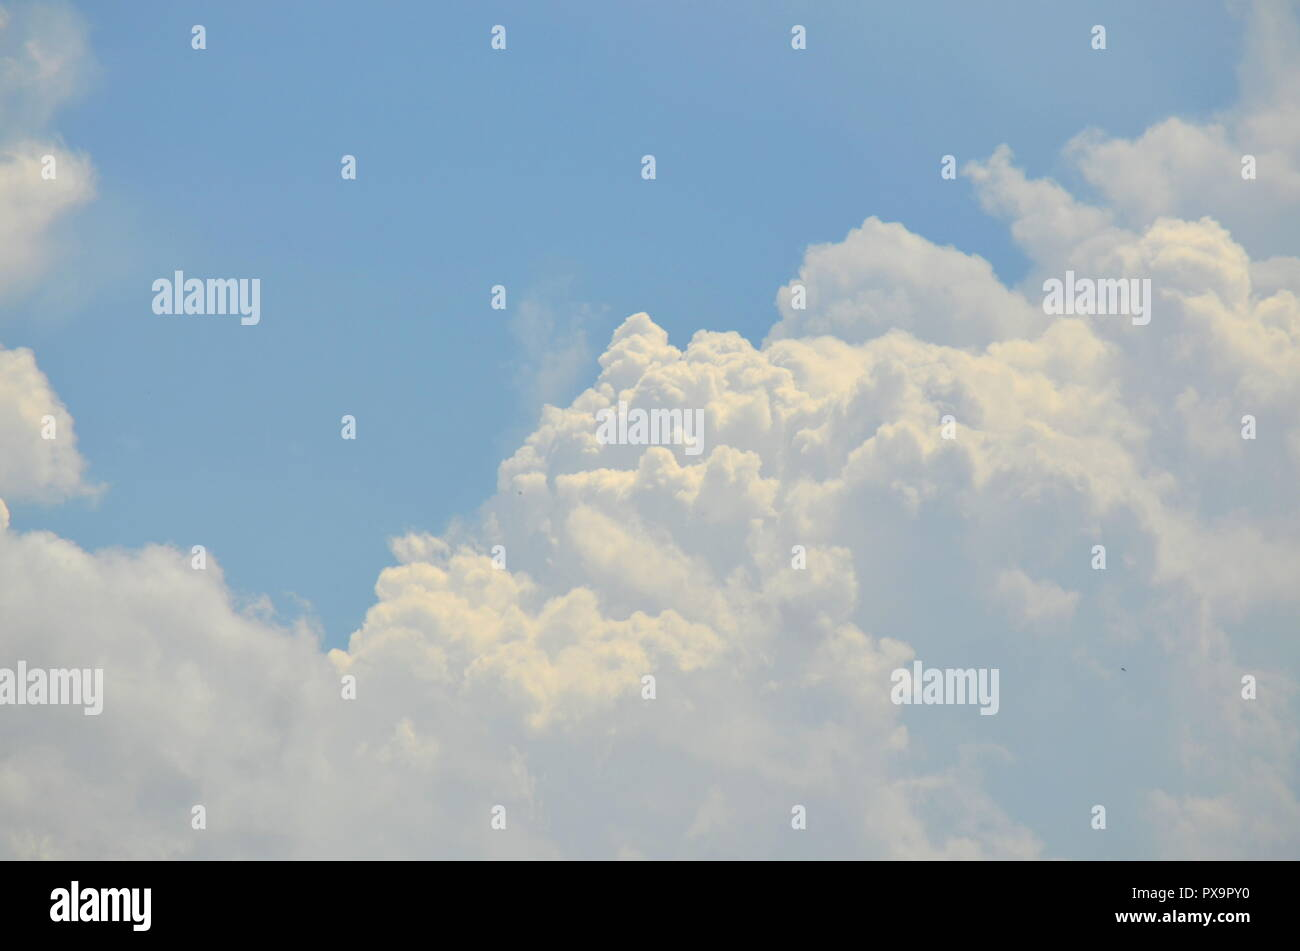 Clouds for backgrounds, screen savers and art. - Stock Image